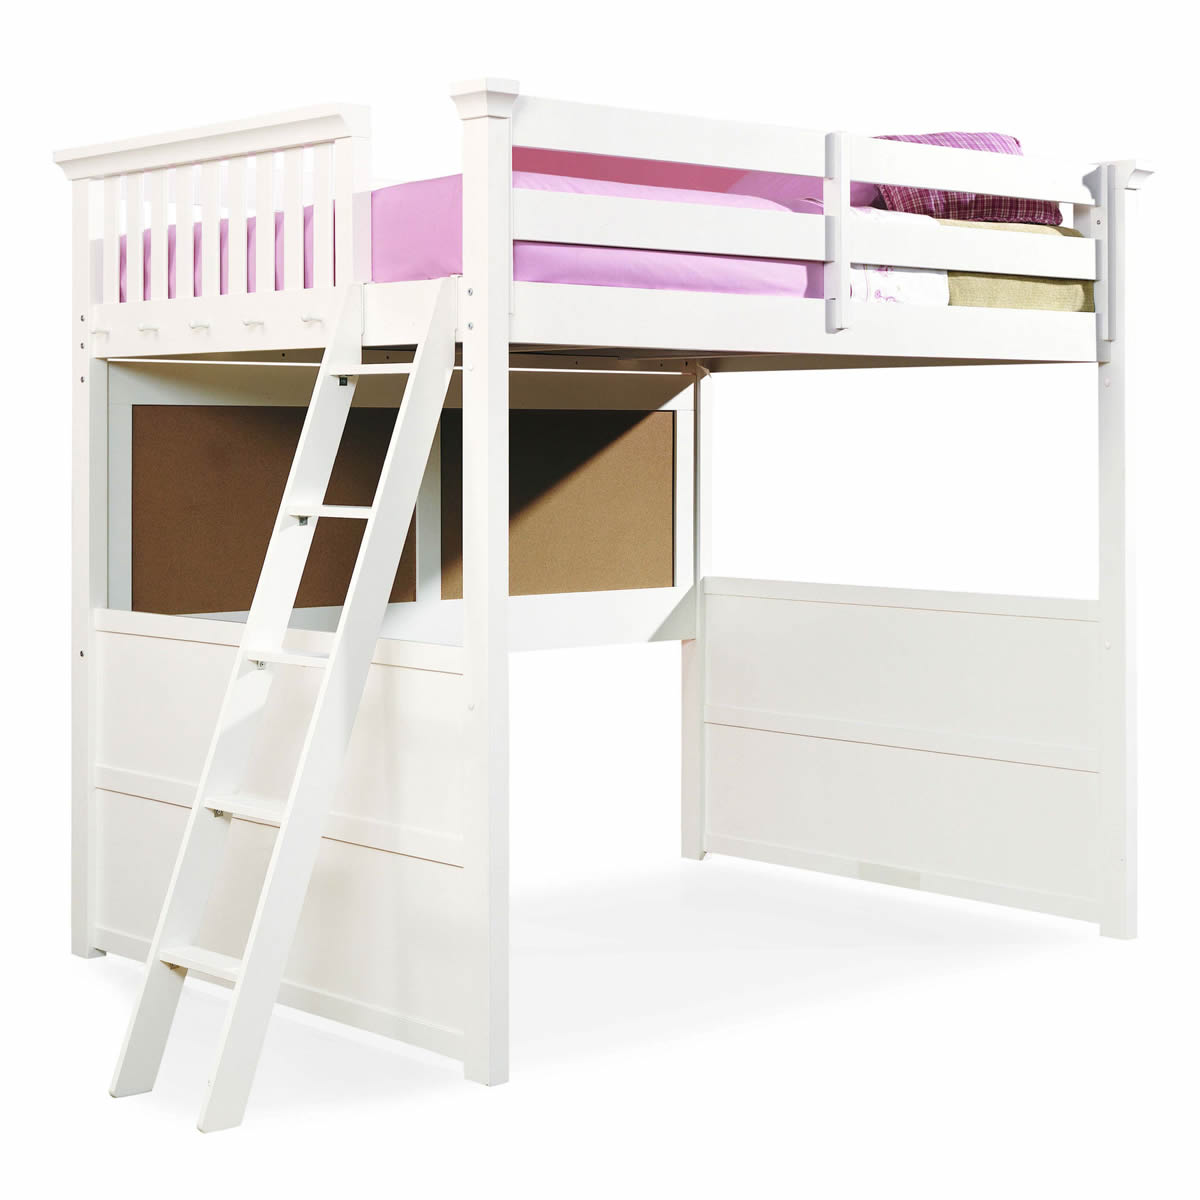 Full Size Loft Bed With Desk For Adults Pictures to pin on Pinterest